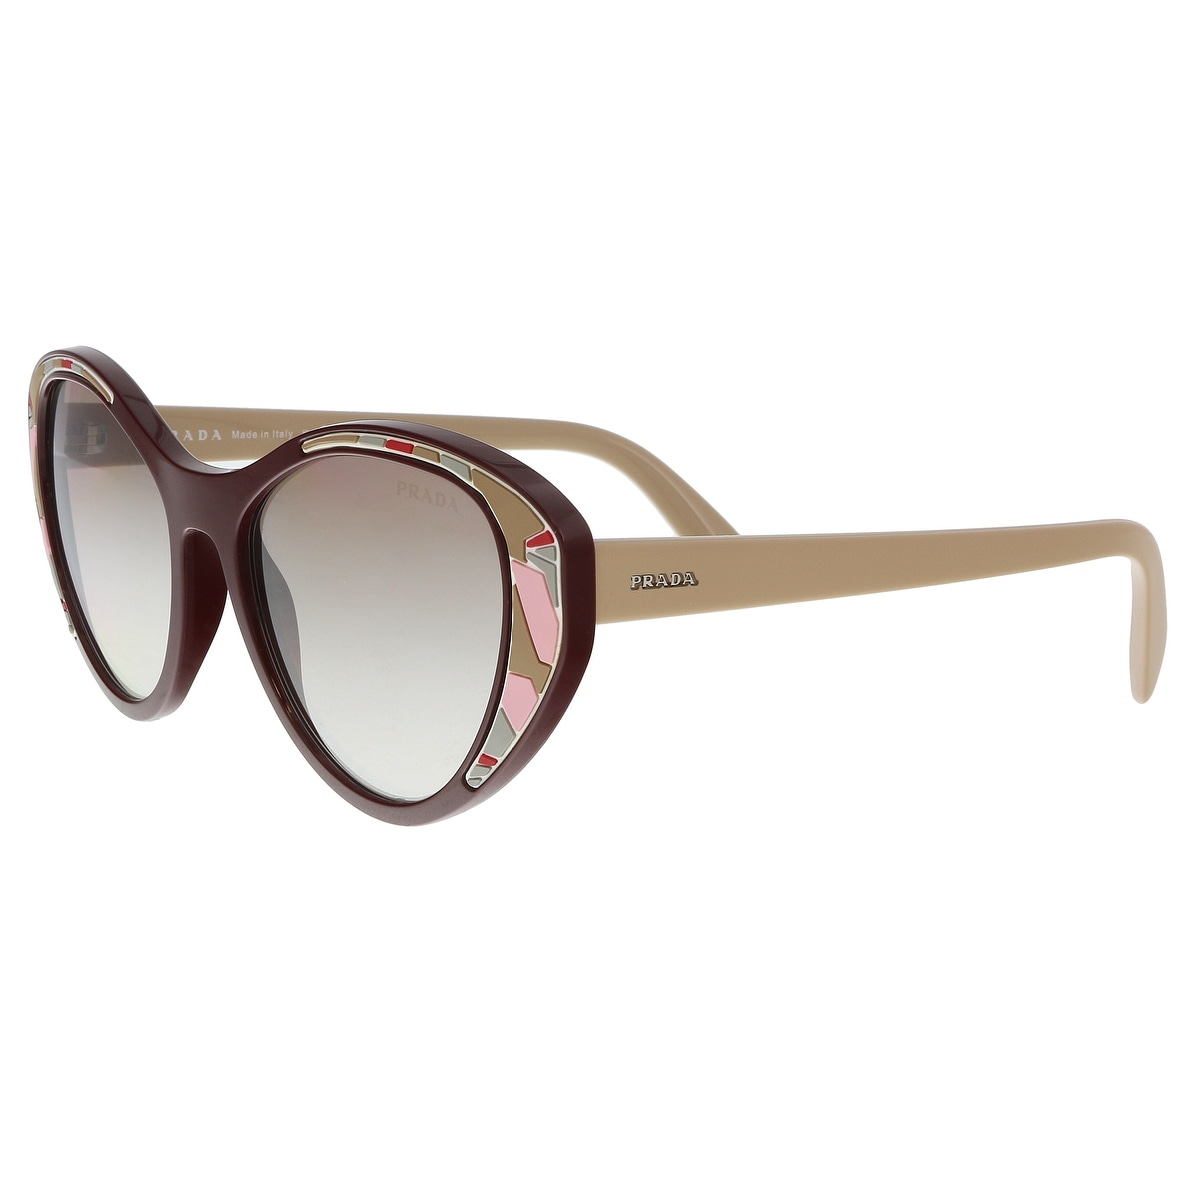 2dafbd7a31b17 Shop Prada PR 14US LJ84O0 Bordeaux Cat eye Sunglasses - 55-18-140 ...